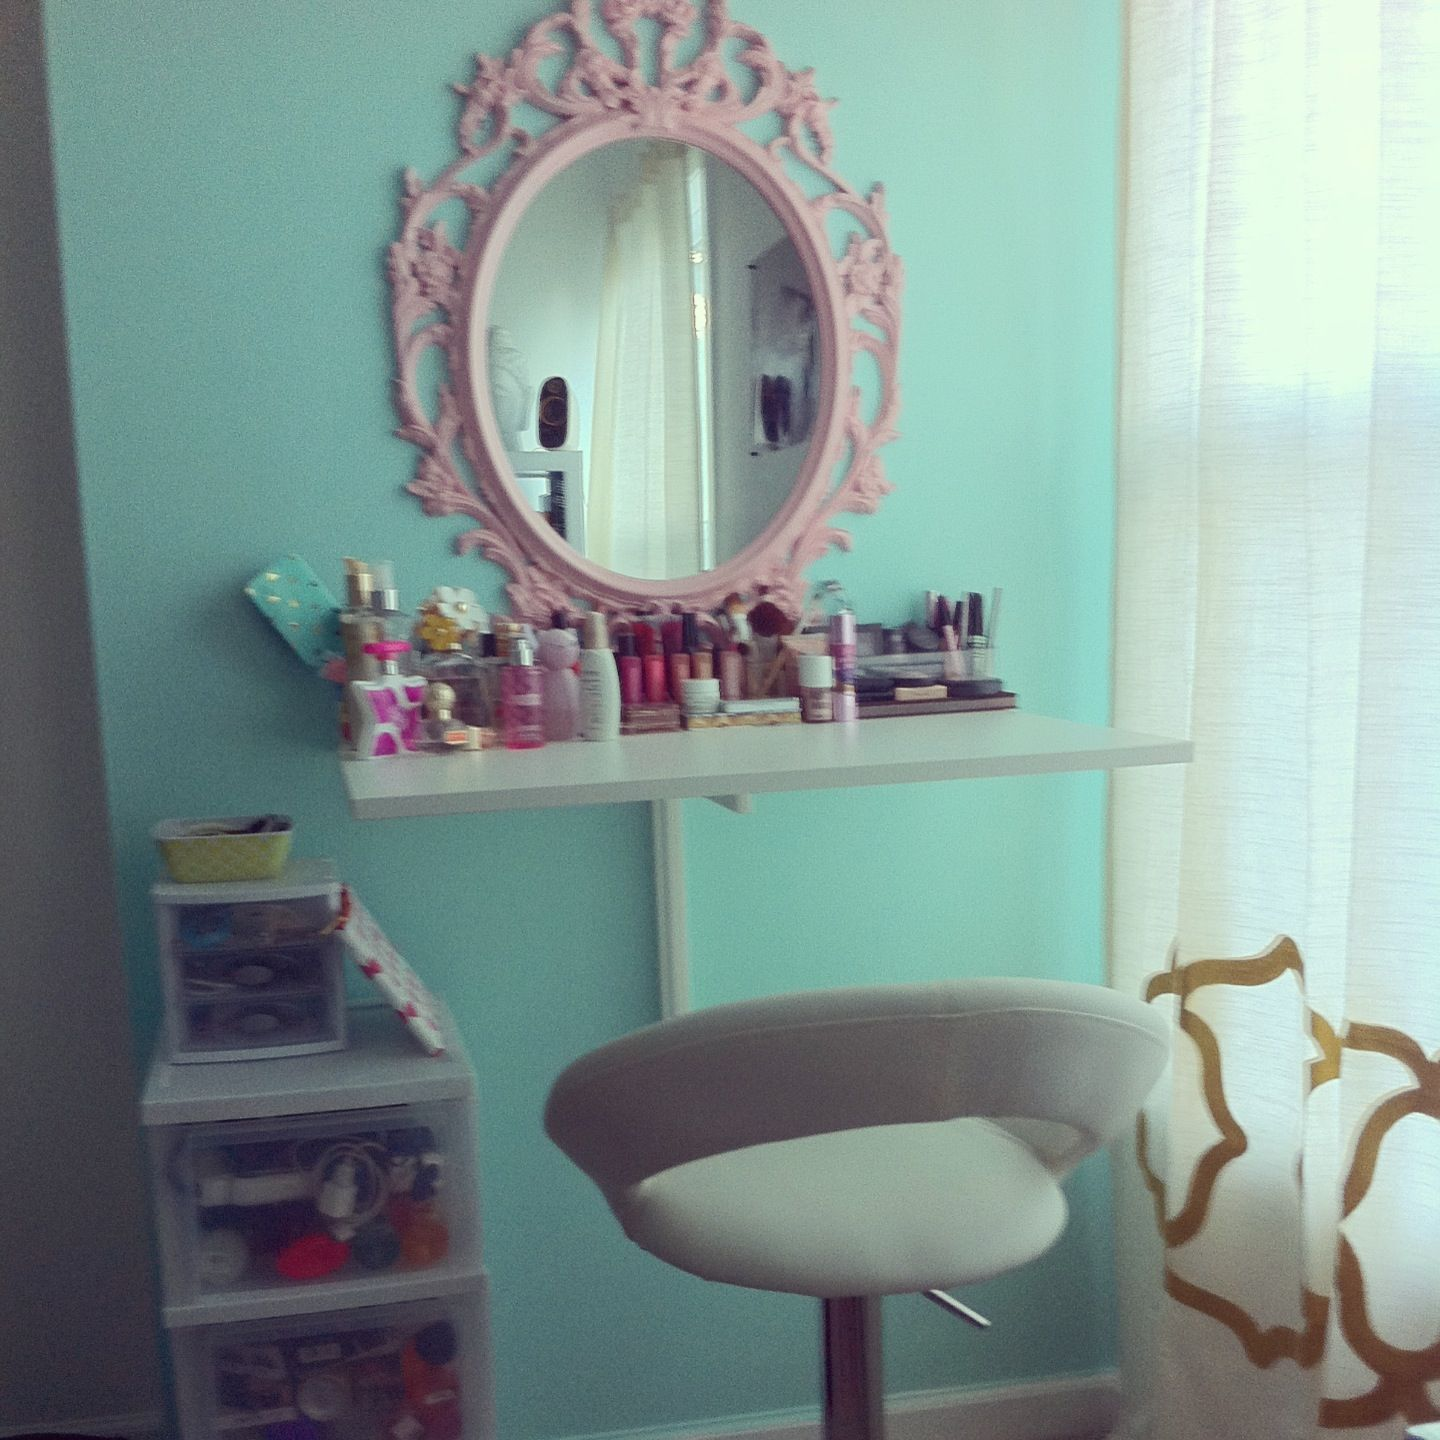 Diy Bathroom Lighting Ideas With Original Images: - I Can Put 2 Drawers Underneath The Waall Desk For Storage! DIY Vanity. Ikea Wall Desk. Ikea